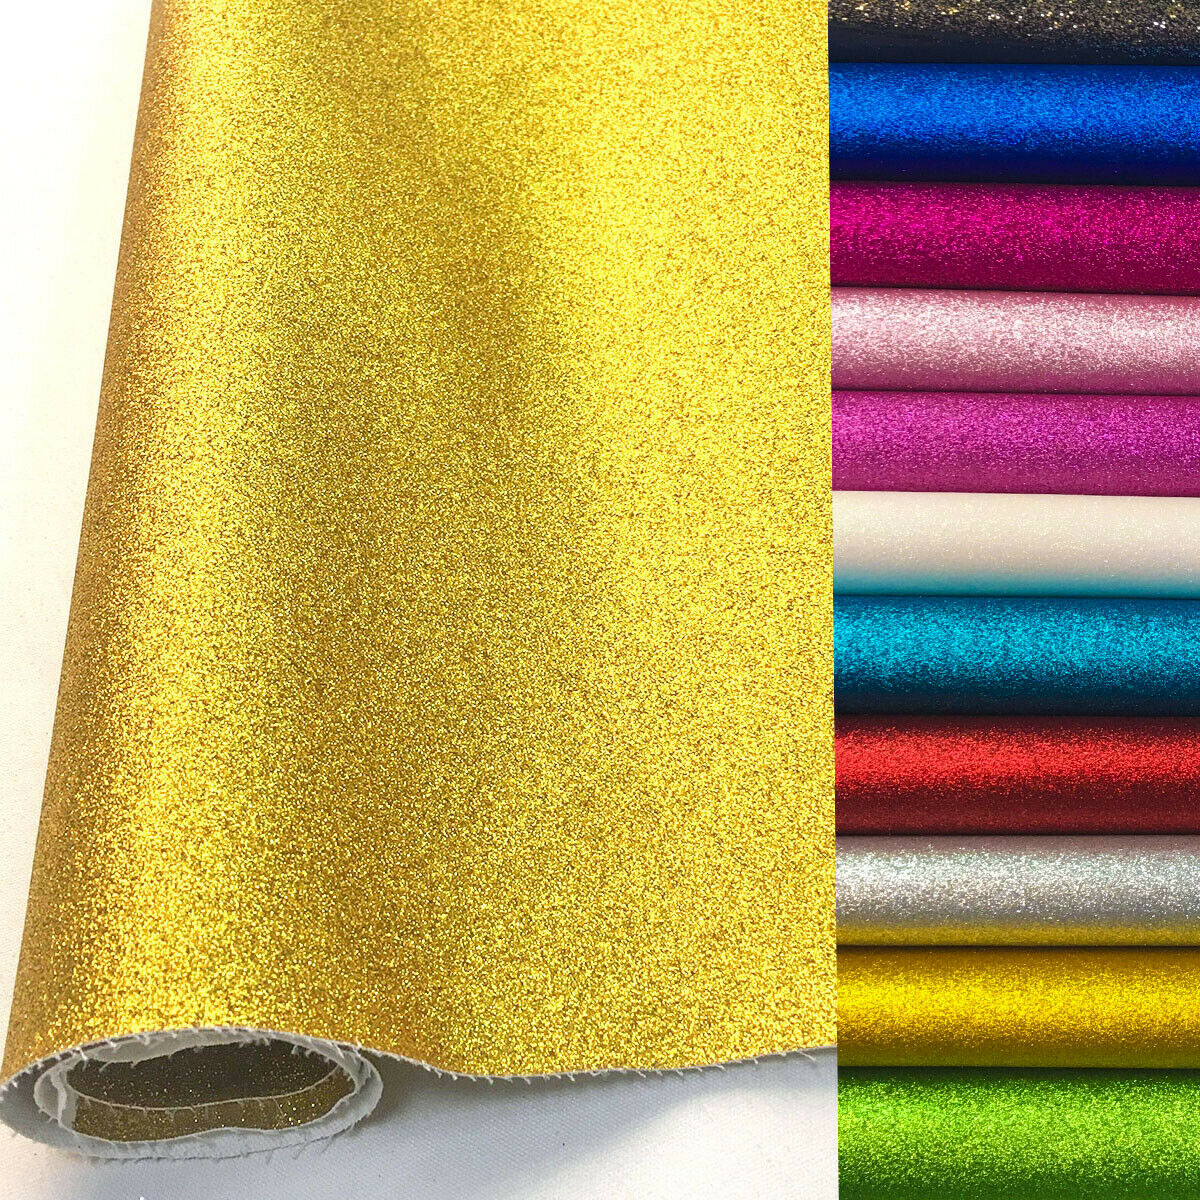 A4/20x135cm Frosted FINE Glitter Vinyl Fabric Sparkle Shiny iridescent  Faux Leather Craft DIY Material Bows Bag Decor Sheets